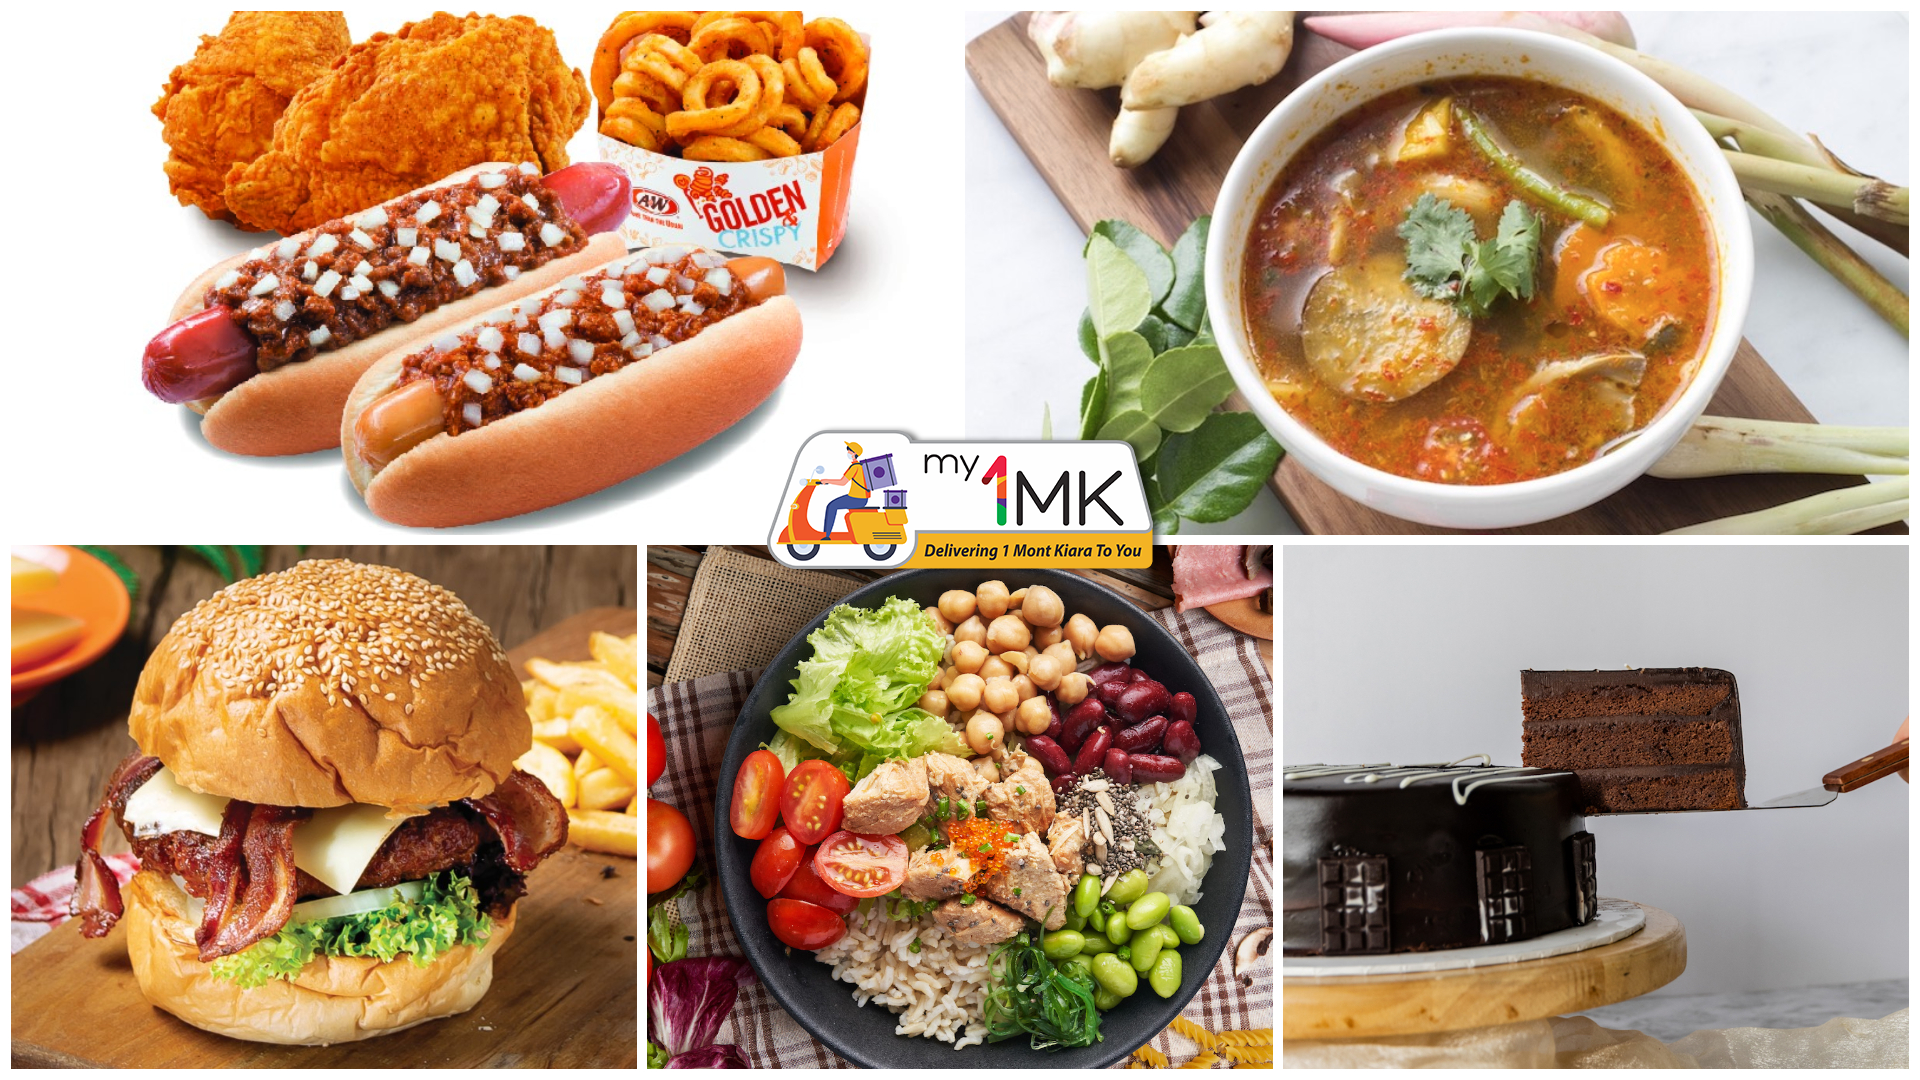 1 Mont Kiara: my1MK Deliveries from PastryVille, Salad Atelier, The Barn, Real Food and A&W